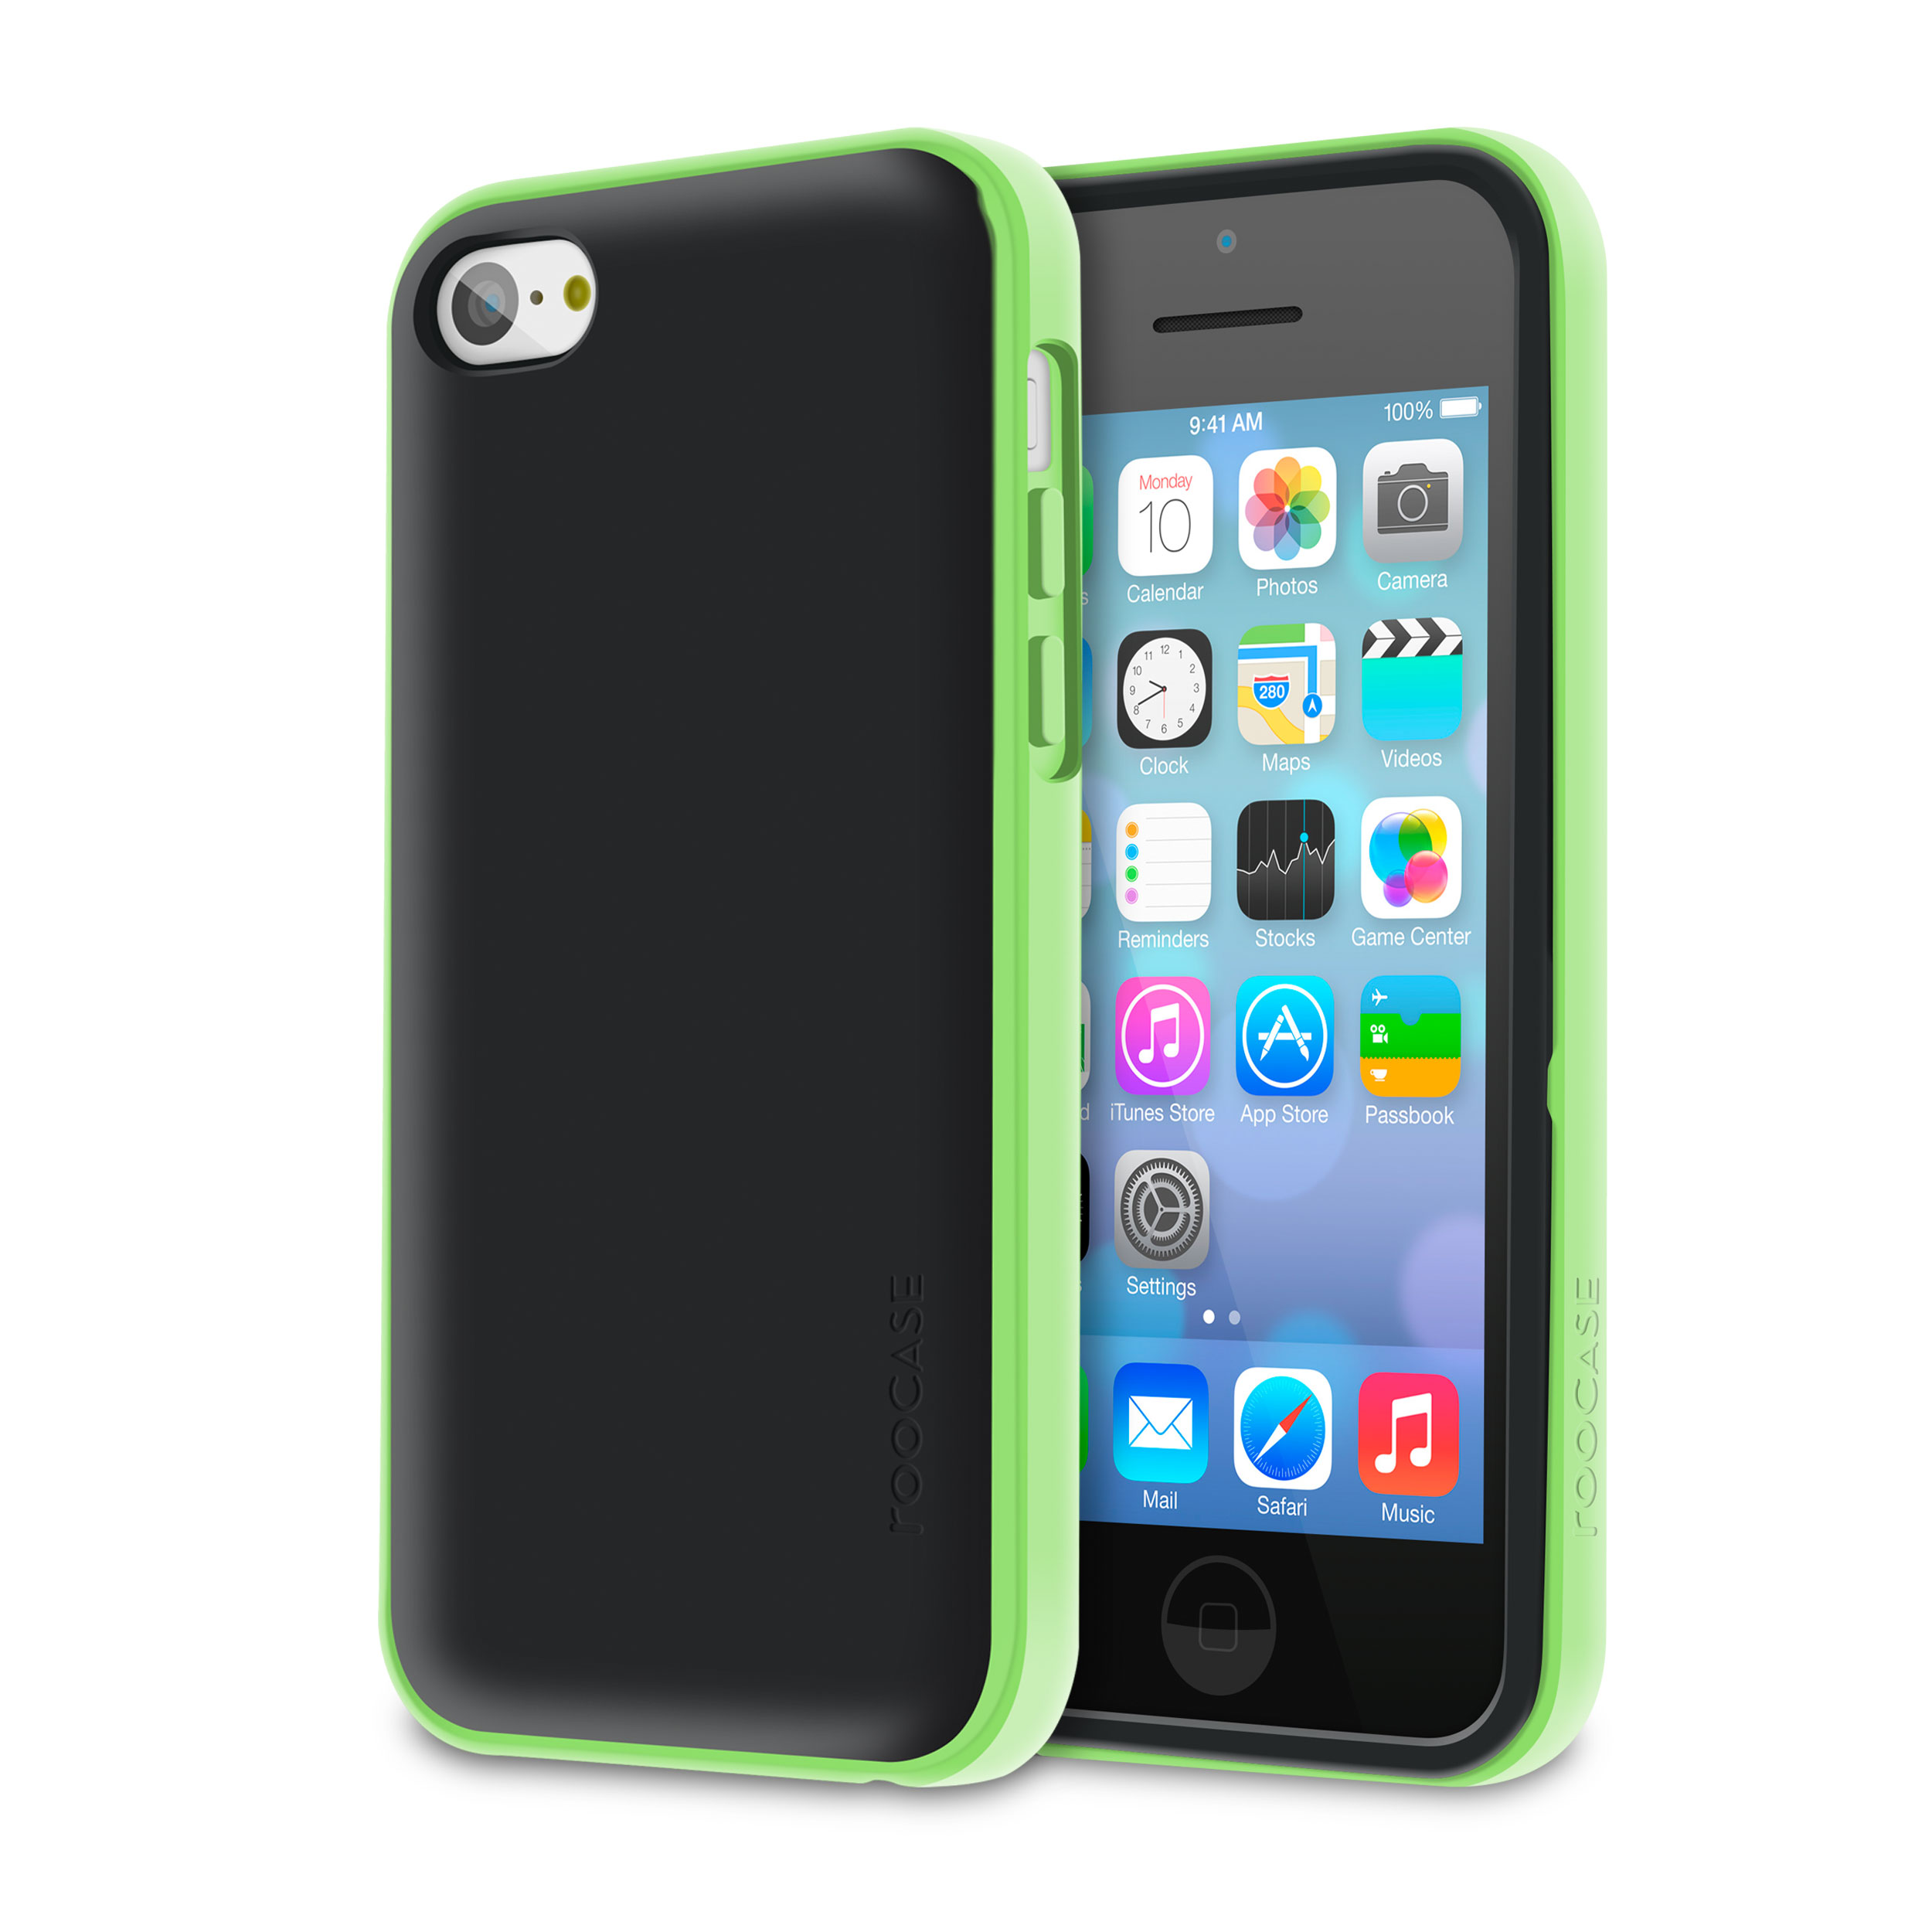 rooCASE Apple iPhone 5C Slim Armor Dual Layer Case Cover [Hype Hybrid] (Green) Advanced Shock Absorption Technology